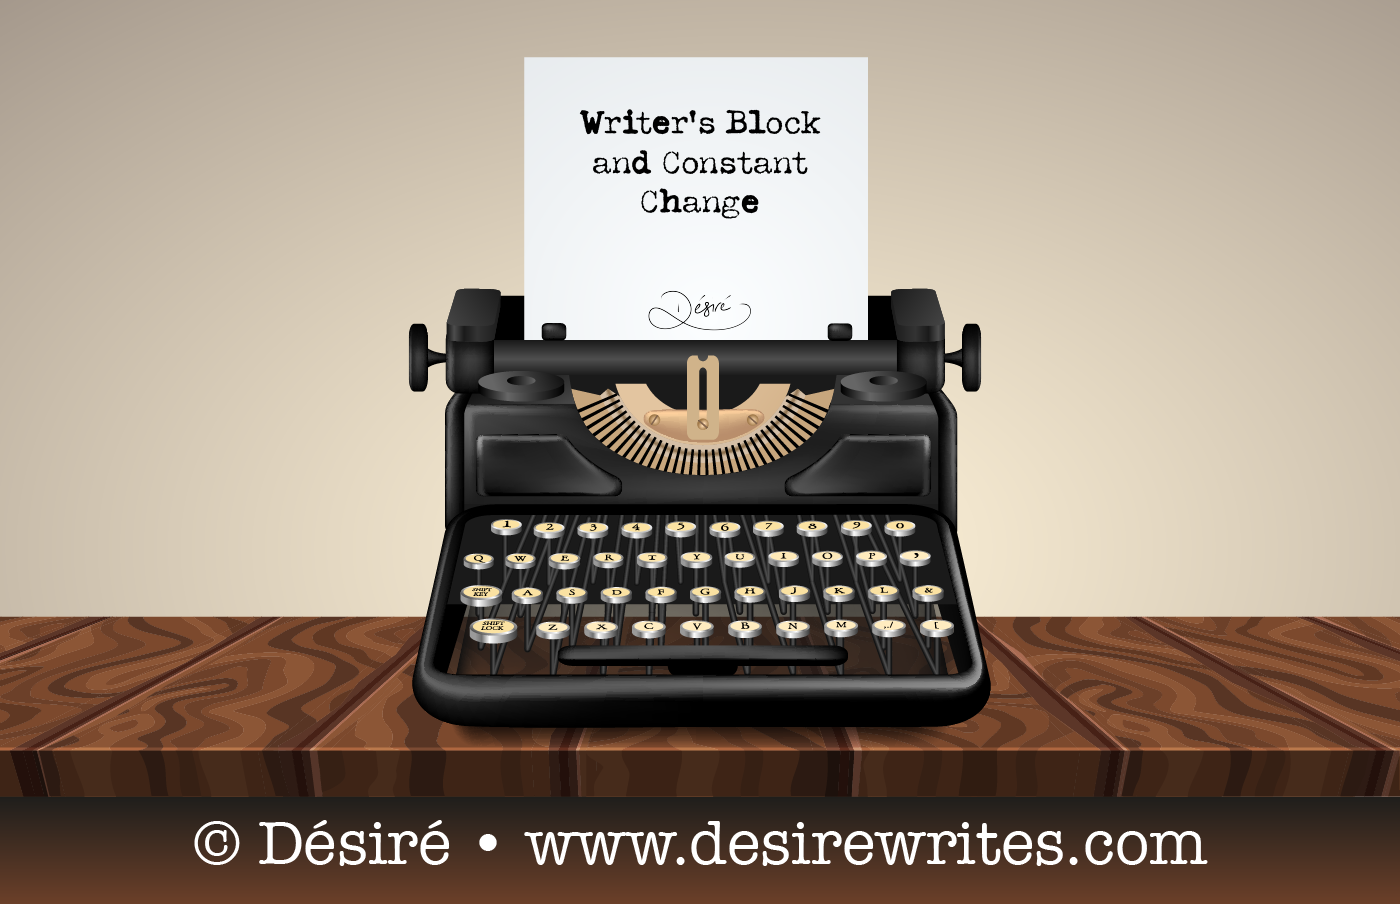 Writer's Block and Constant Change